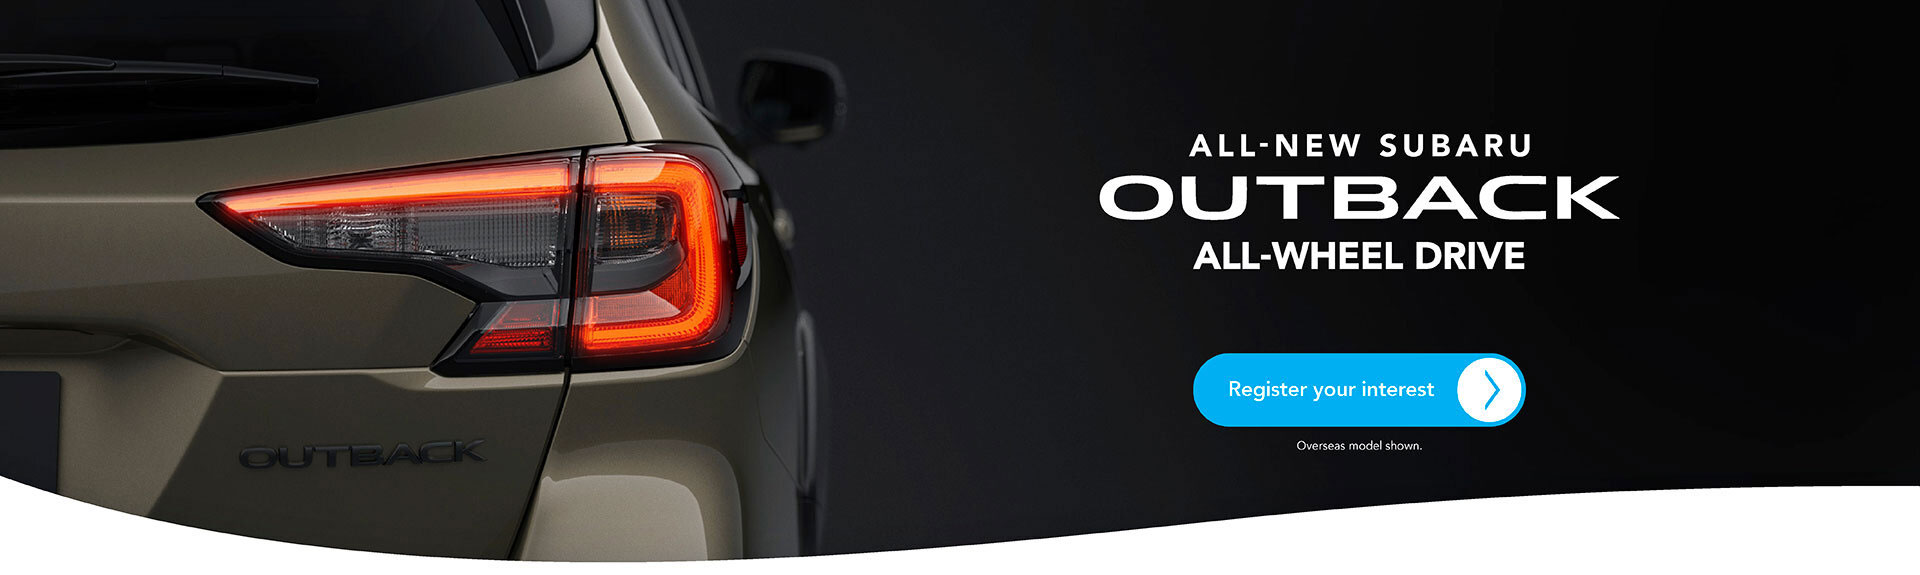 New Subaru Outback Register Your Interest